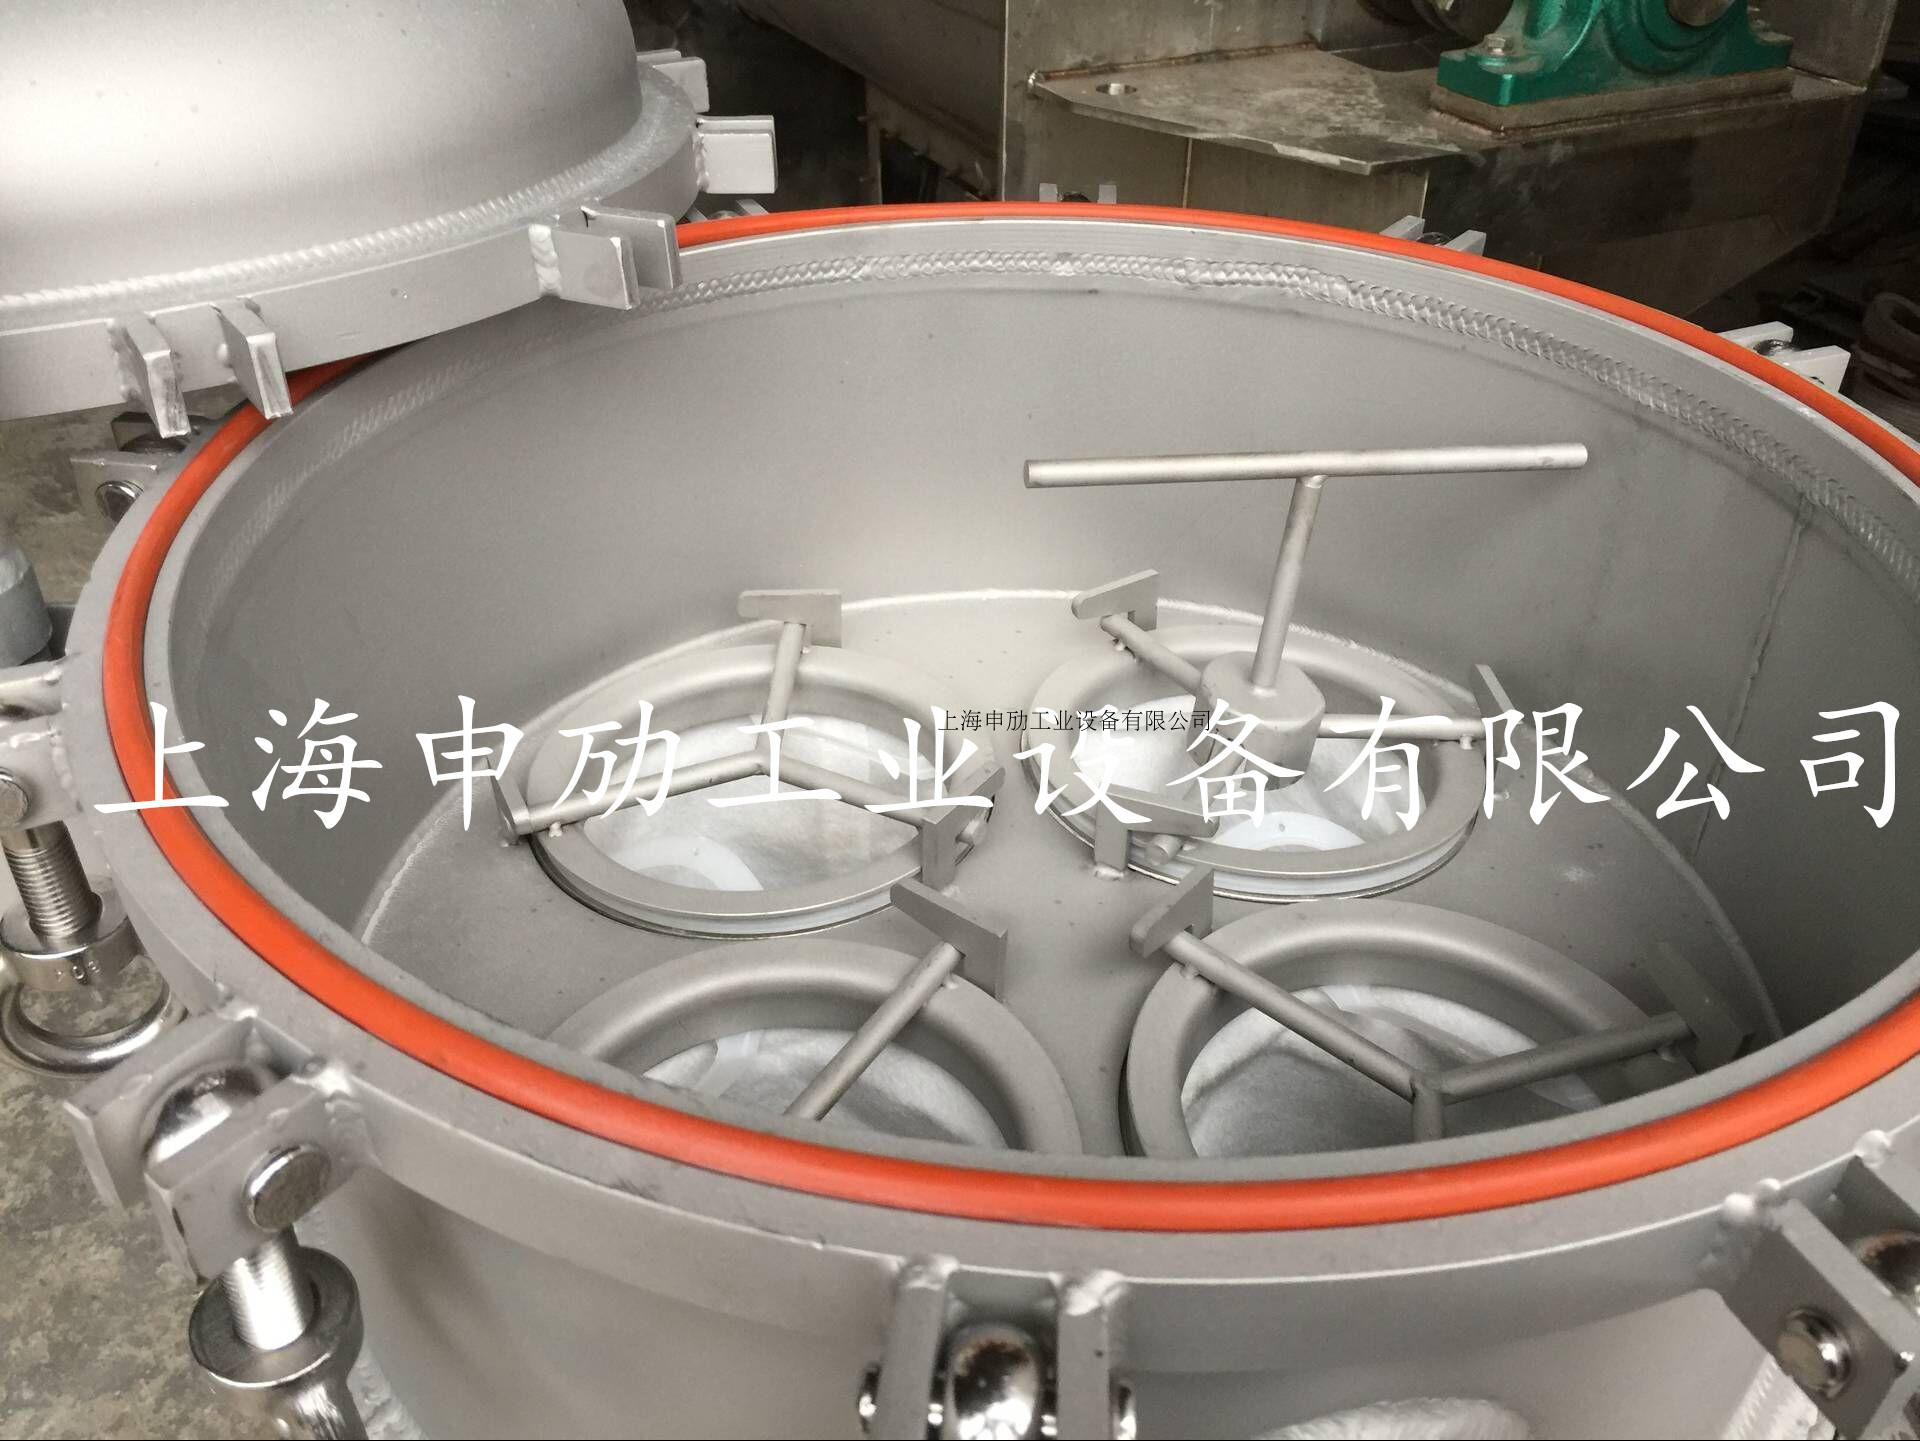 Ring quick opening bag filter, jacketed insulation bag filter, 304 stainless steel bag filter